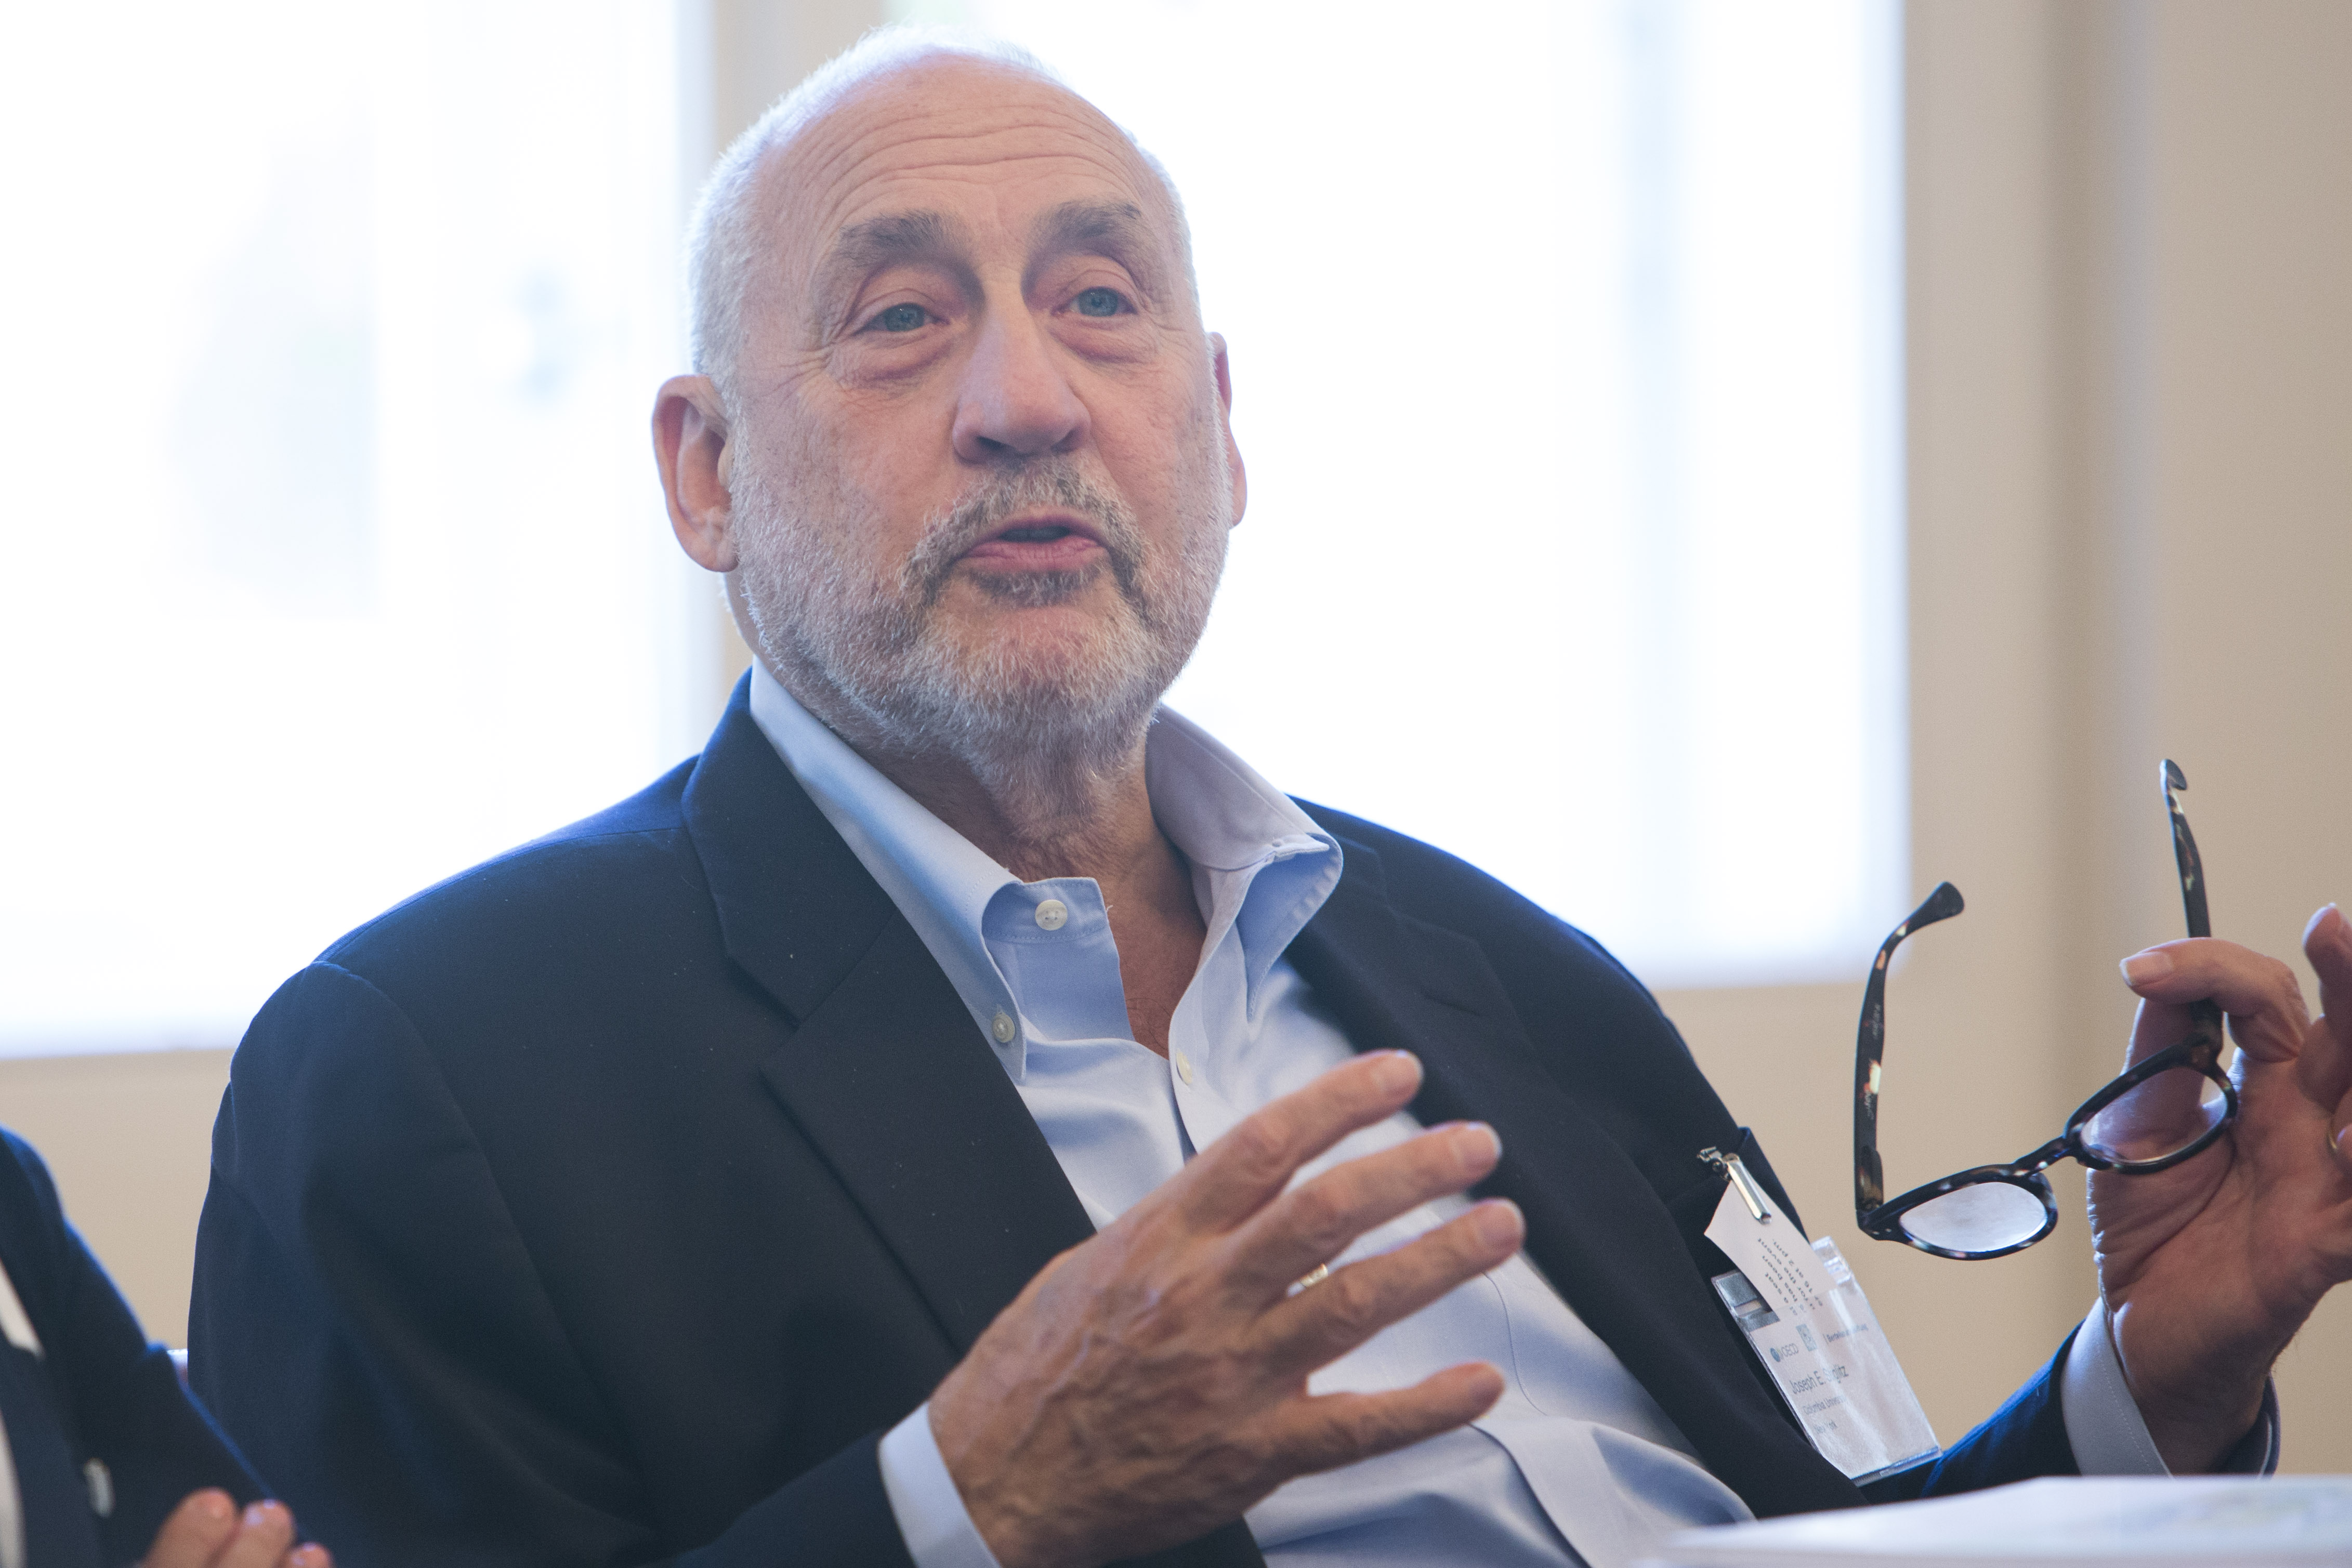 Joseph-Stiglitz-on-Inequality-Markets-and-The-Role-of-Government.jpg